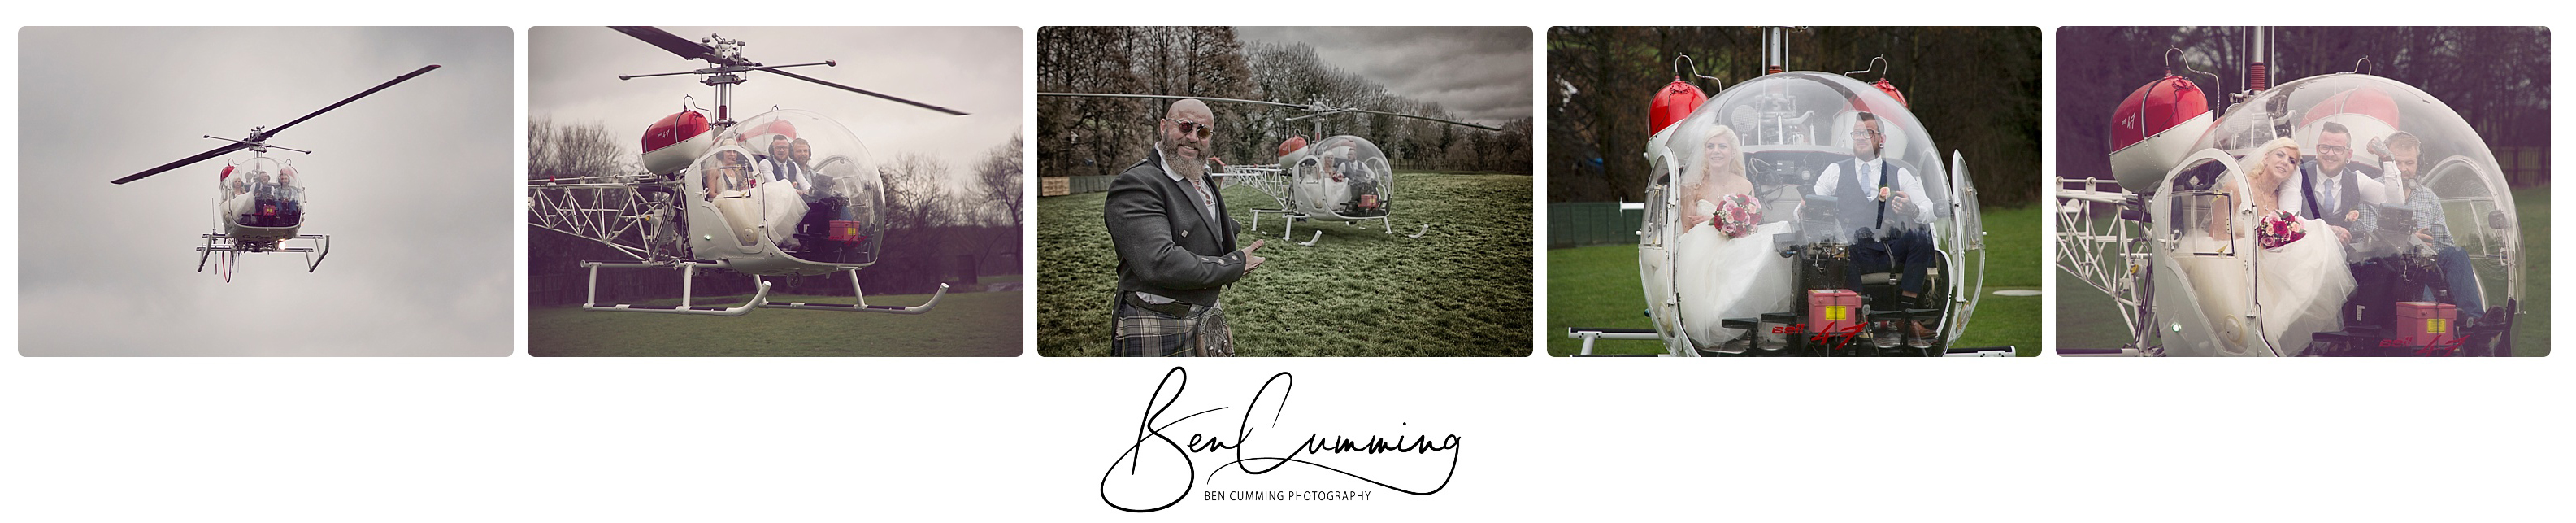 Wedding Helicopter! Ben Cumming Photography